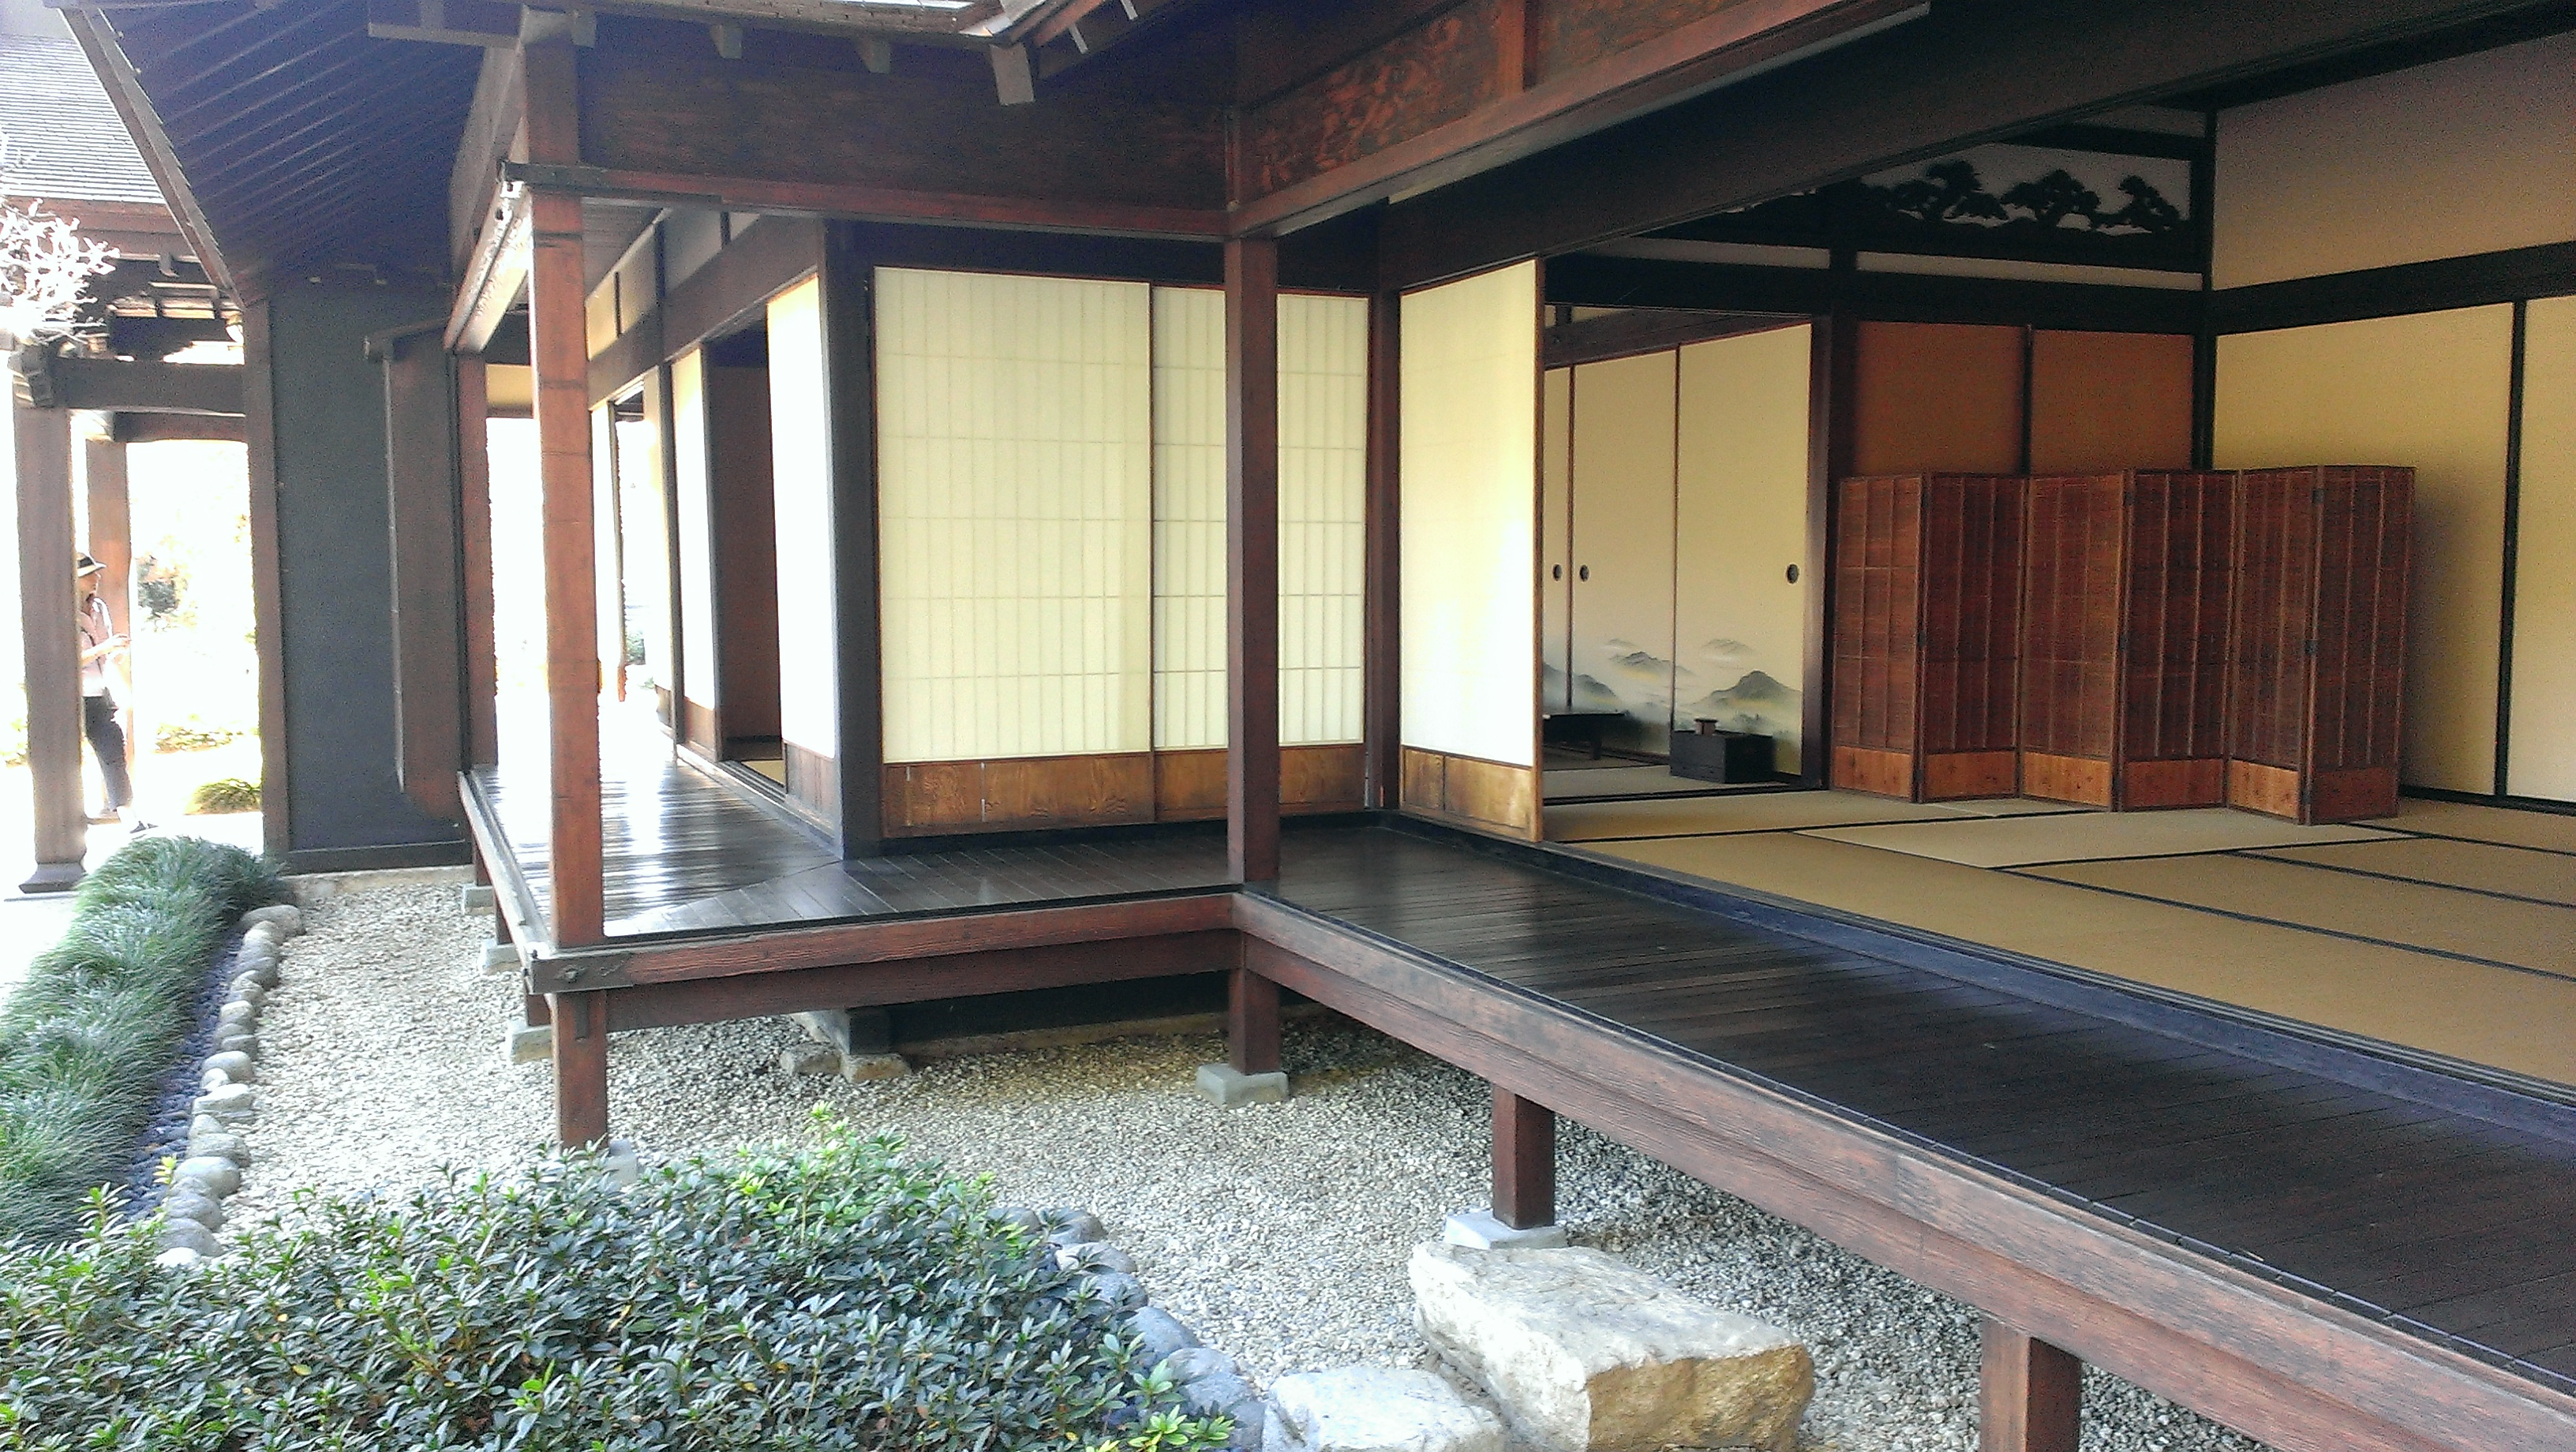 File Alternate Detail Of Traditional Japanese Home At Japanese Garden Huntington Library Art